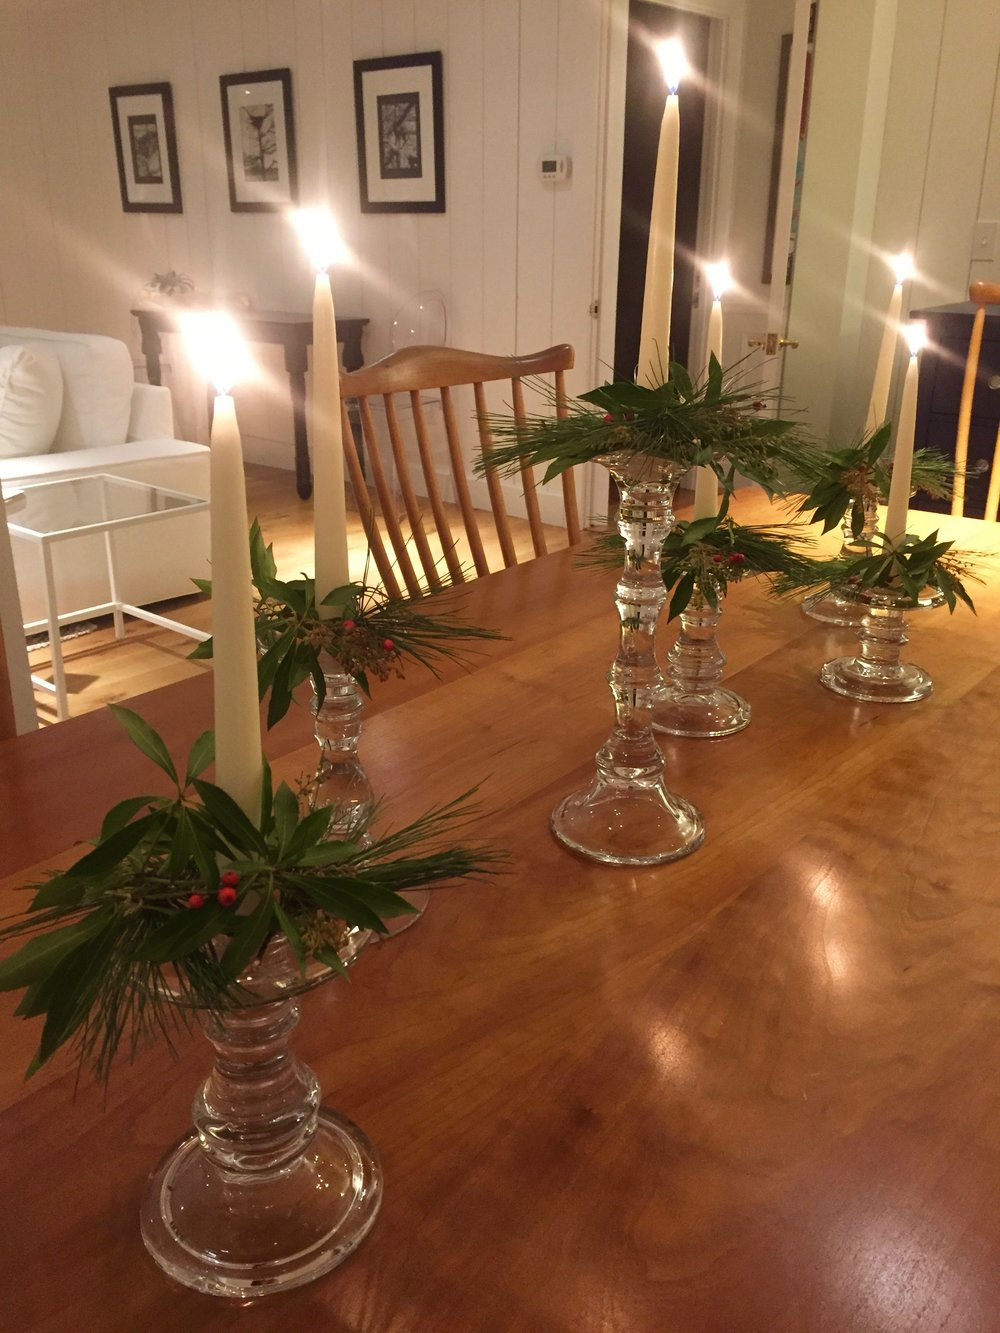 a large dining table was set with glass candles and live greens.